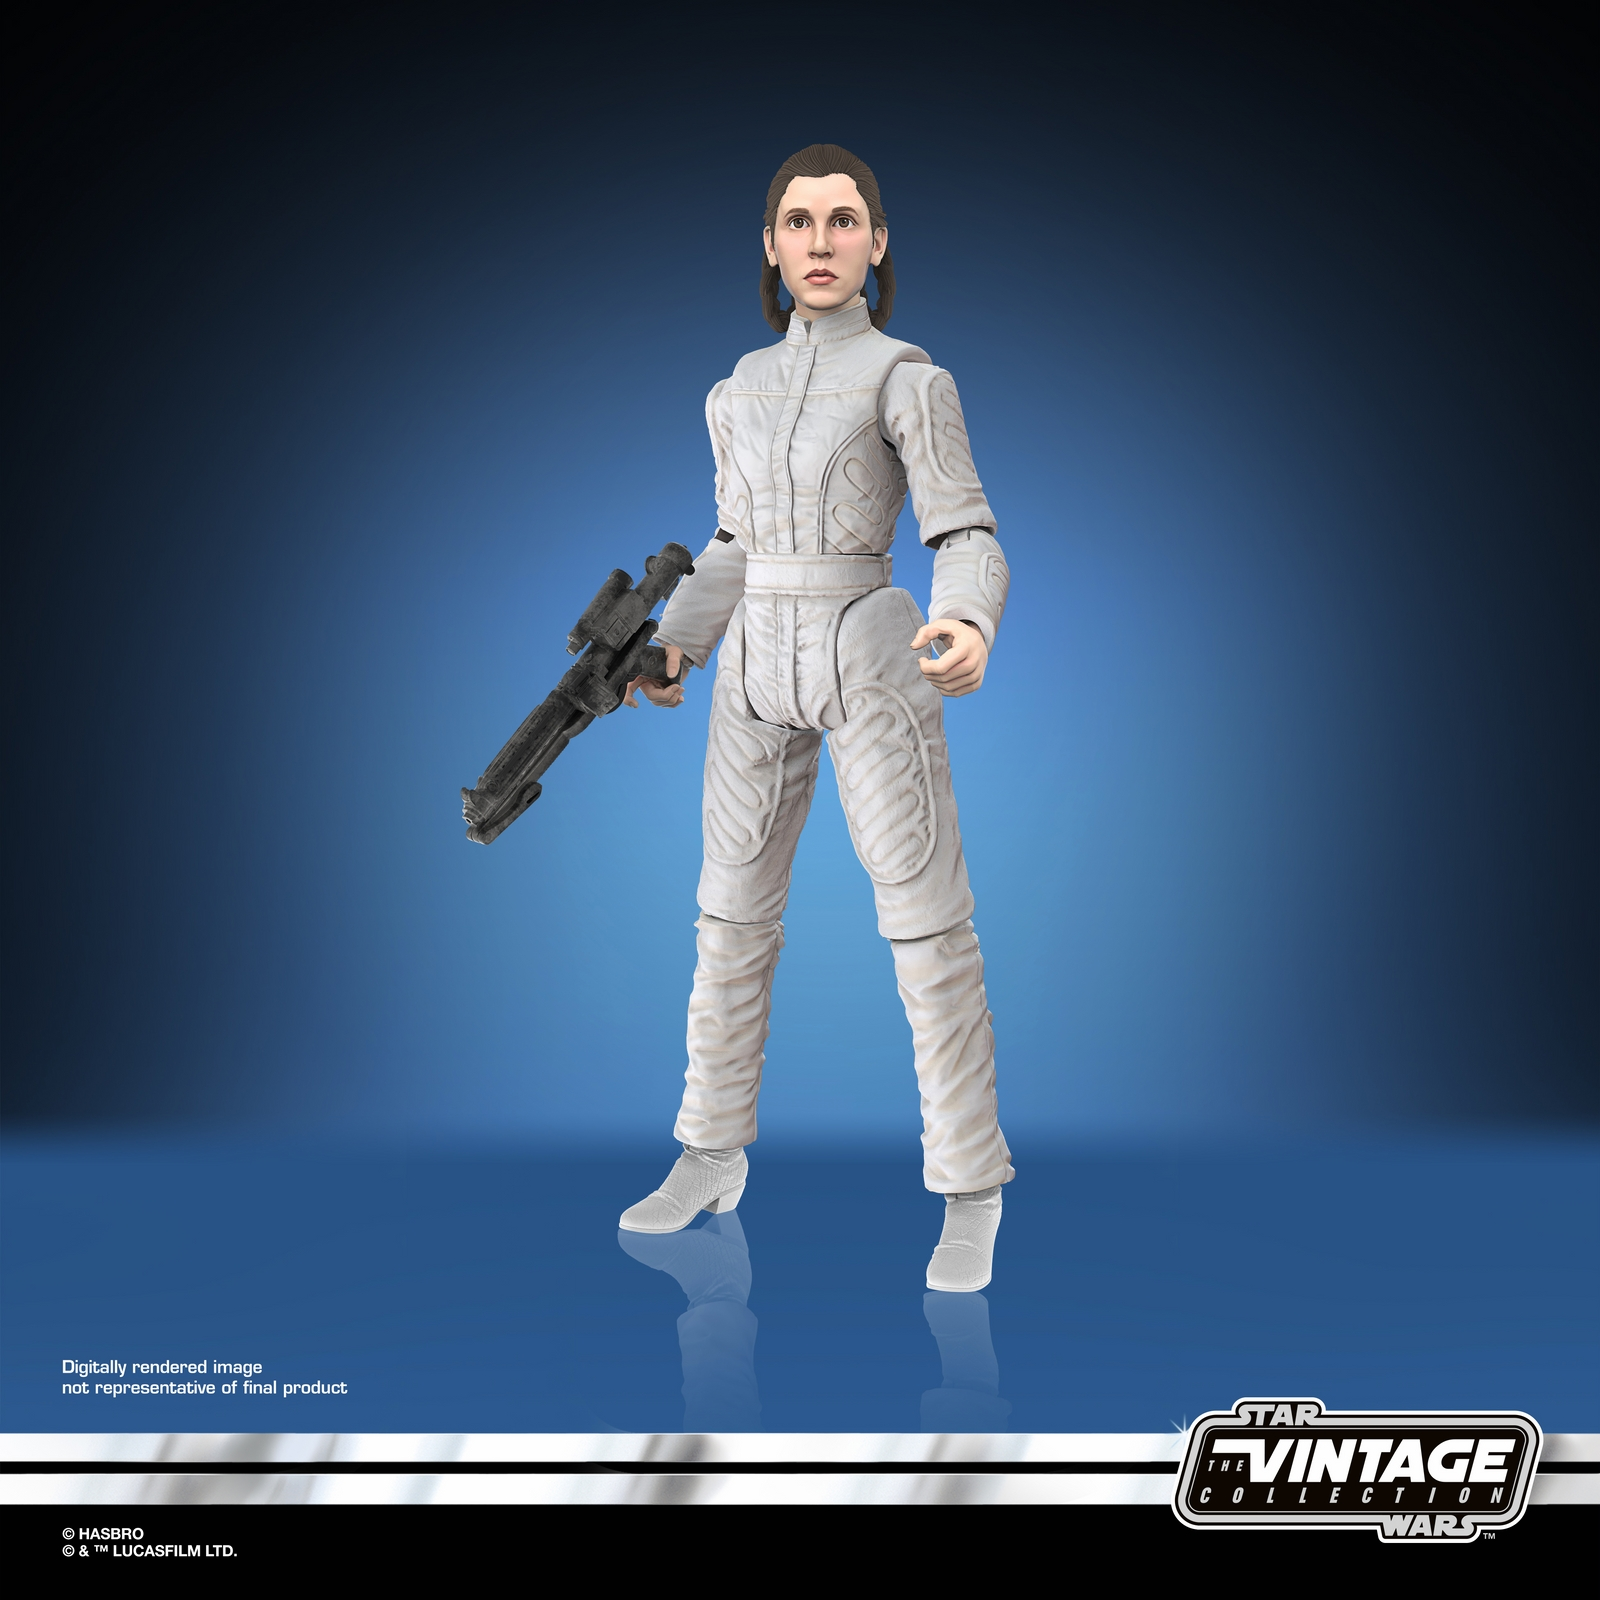 star_wars_the_vintage_collection_3_75-inch_princess_leia_organa_bespin_escape_figure_digital_oop_3.jpg